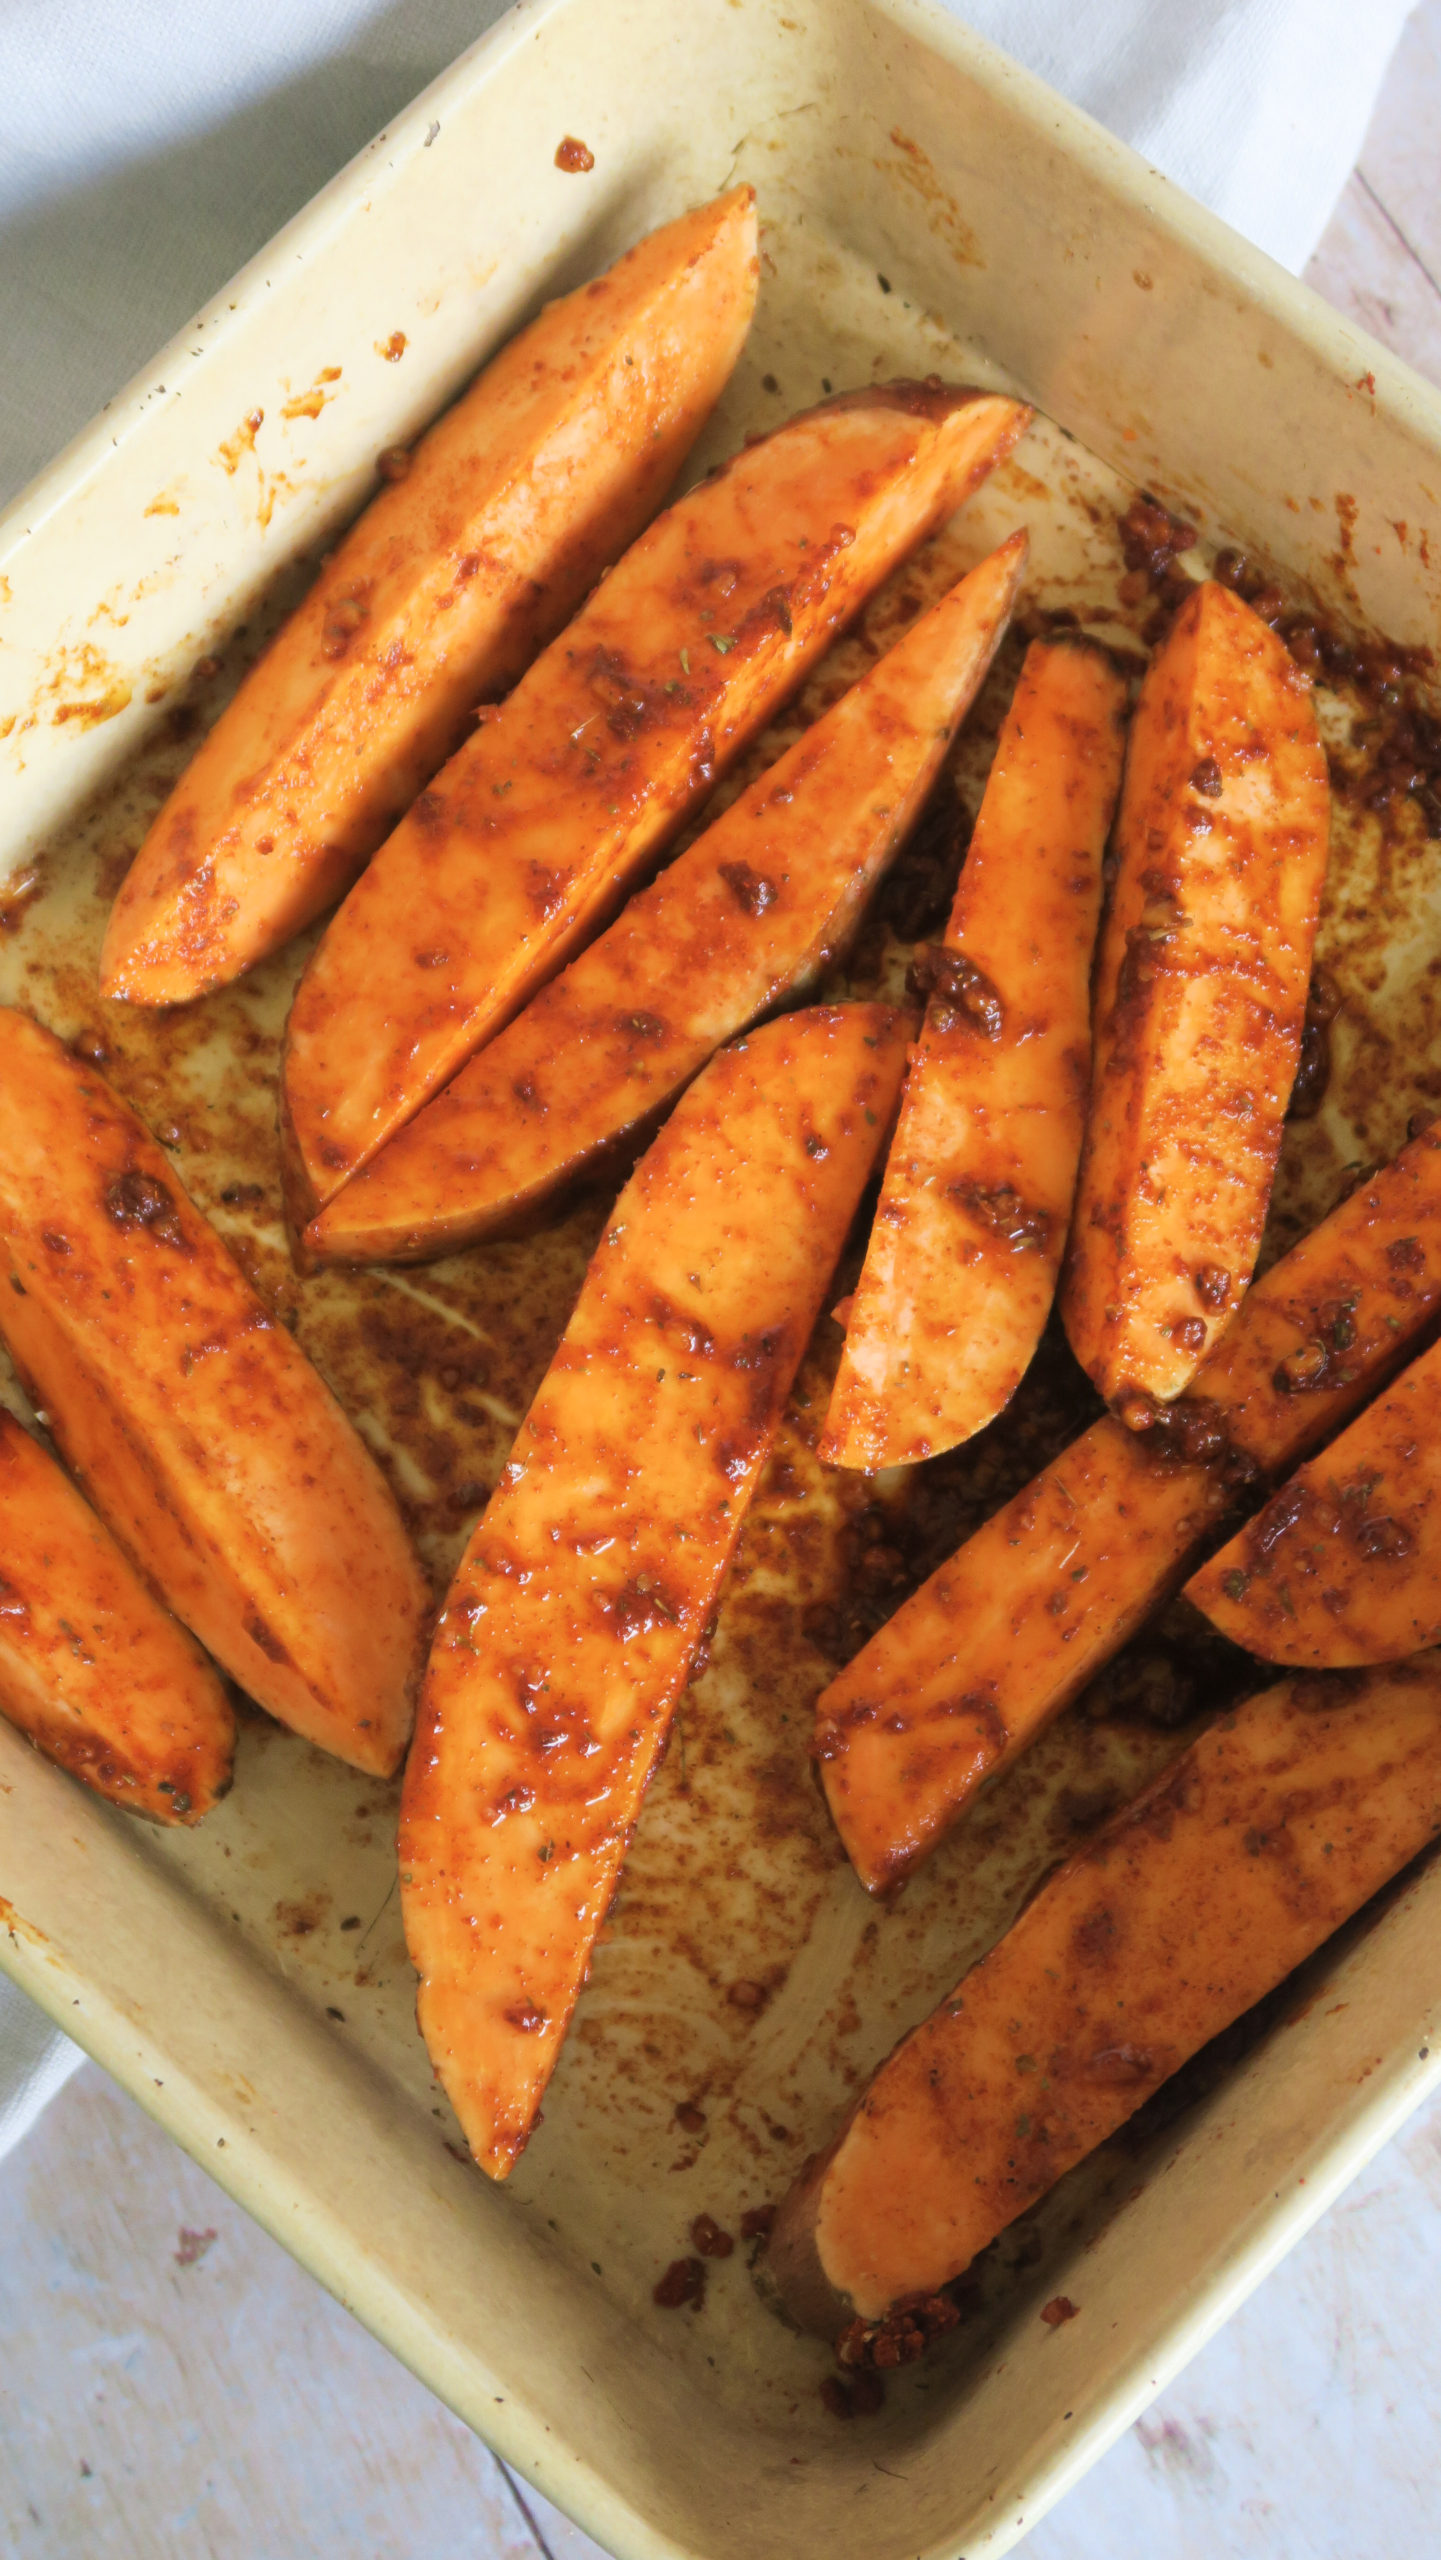 Sweet potato wedges pre-cook in a baking tray